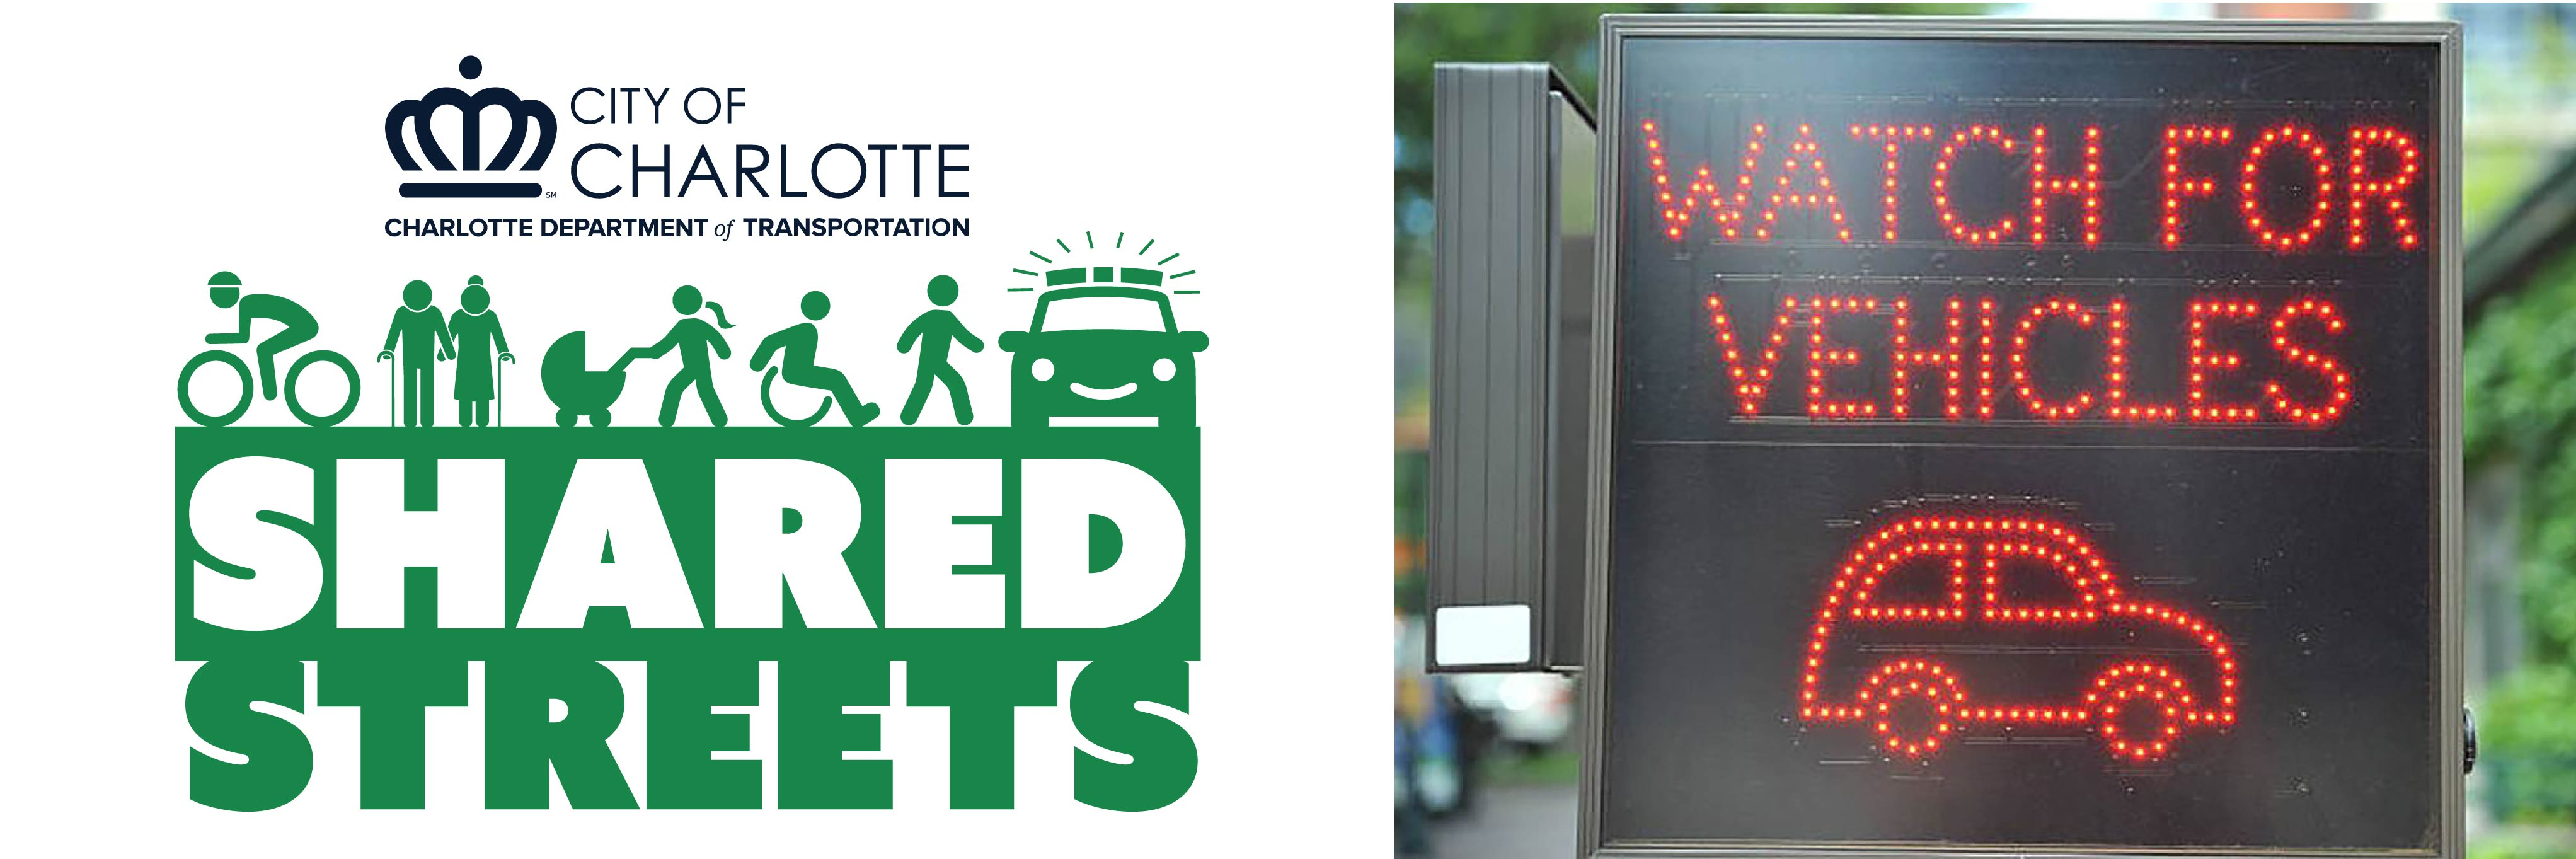 CLT Shared Streets